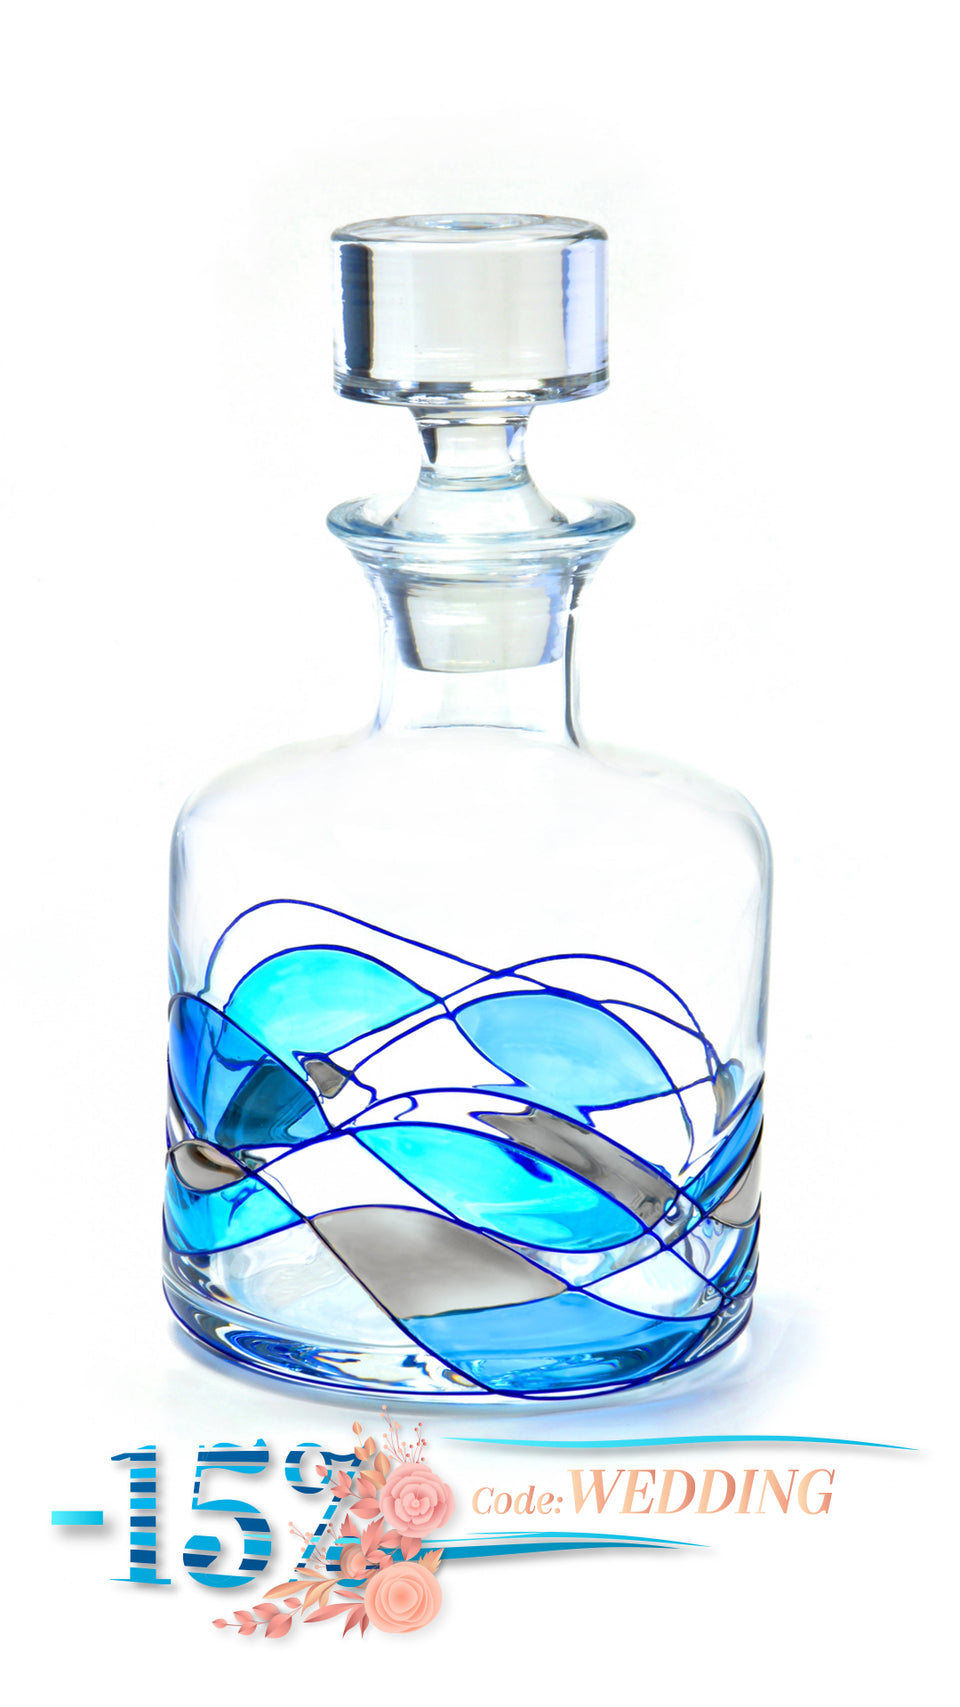 'MEDITERRANEAN' Blue Line, 55oz Whiskey Decanter